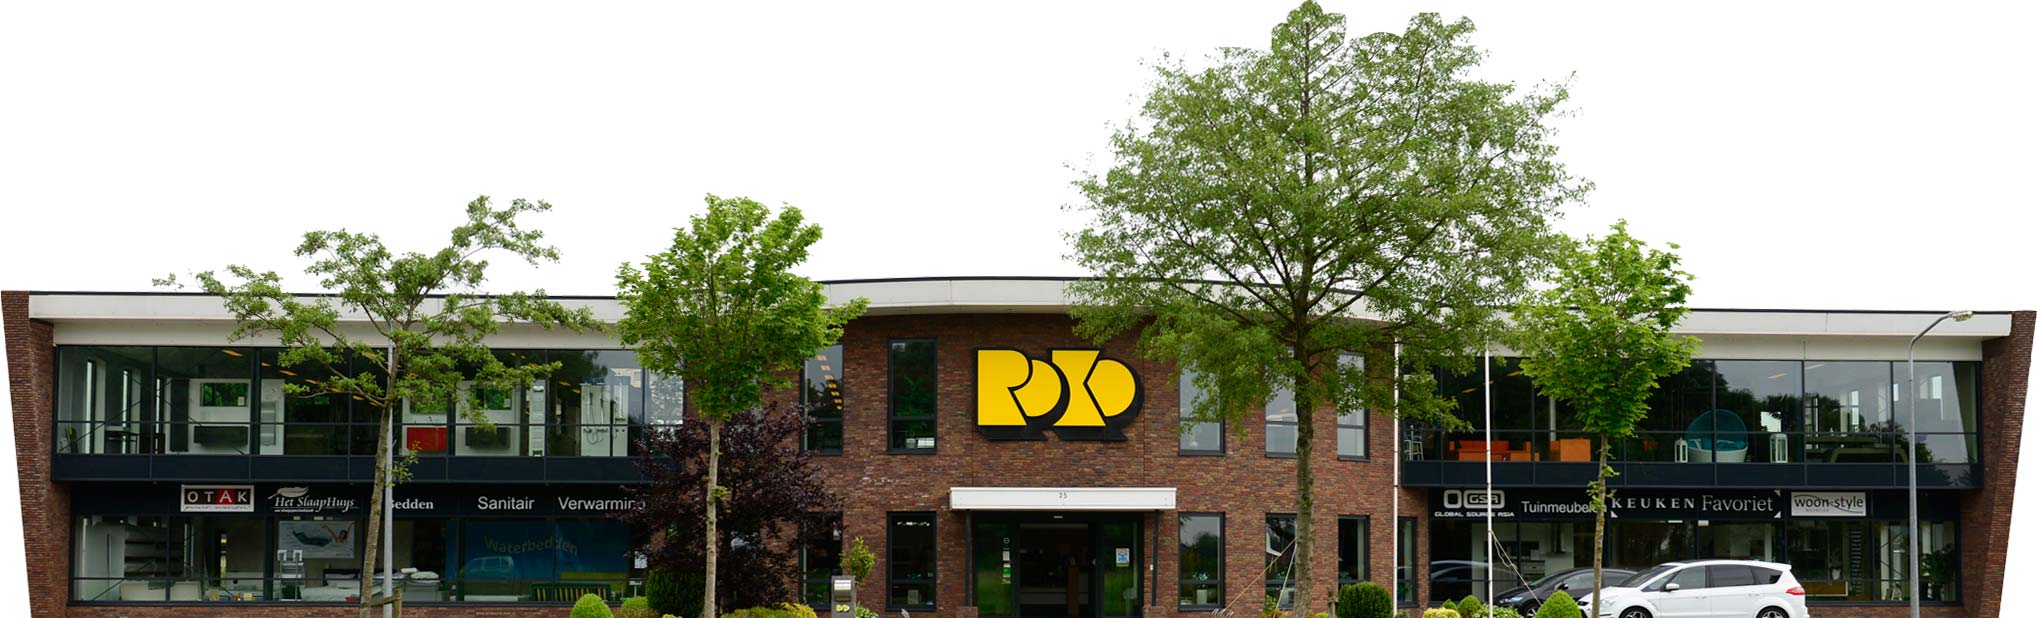 Roko Wooncentrum